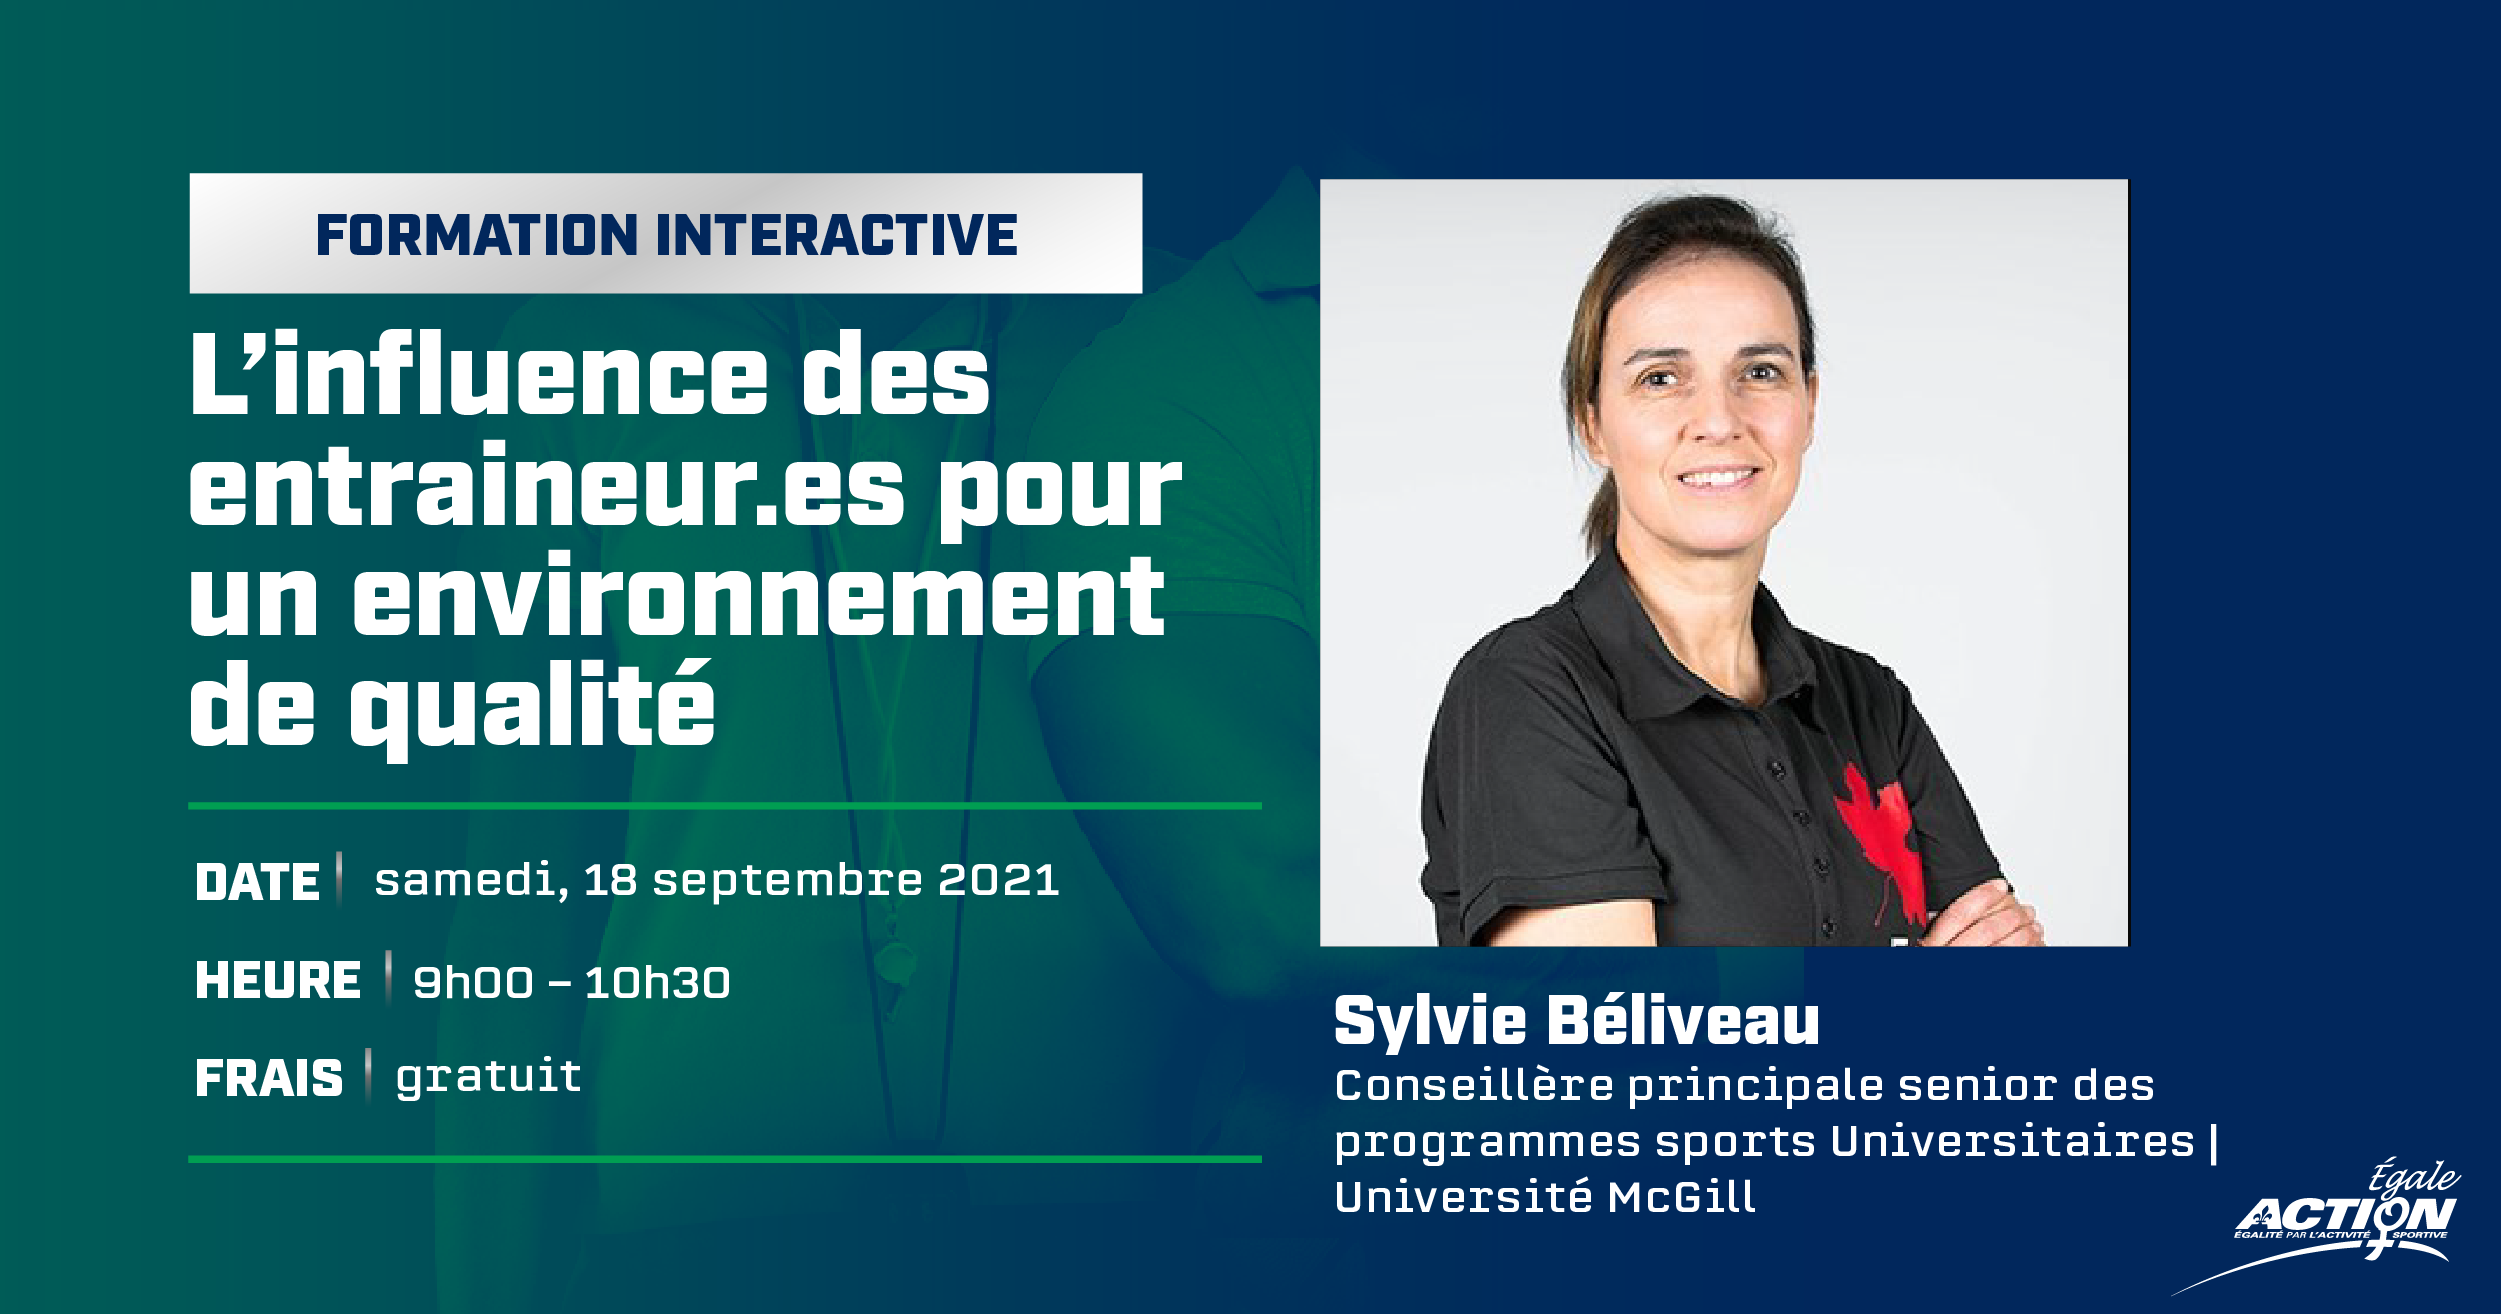 SNE_Horaire_Ateliers_Formation interactive